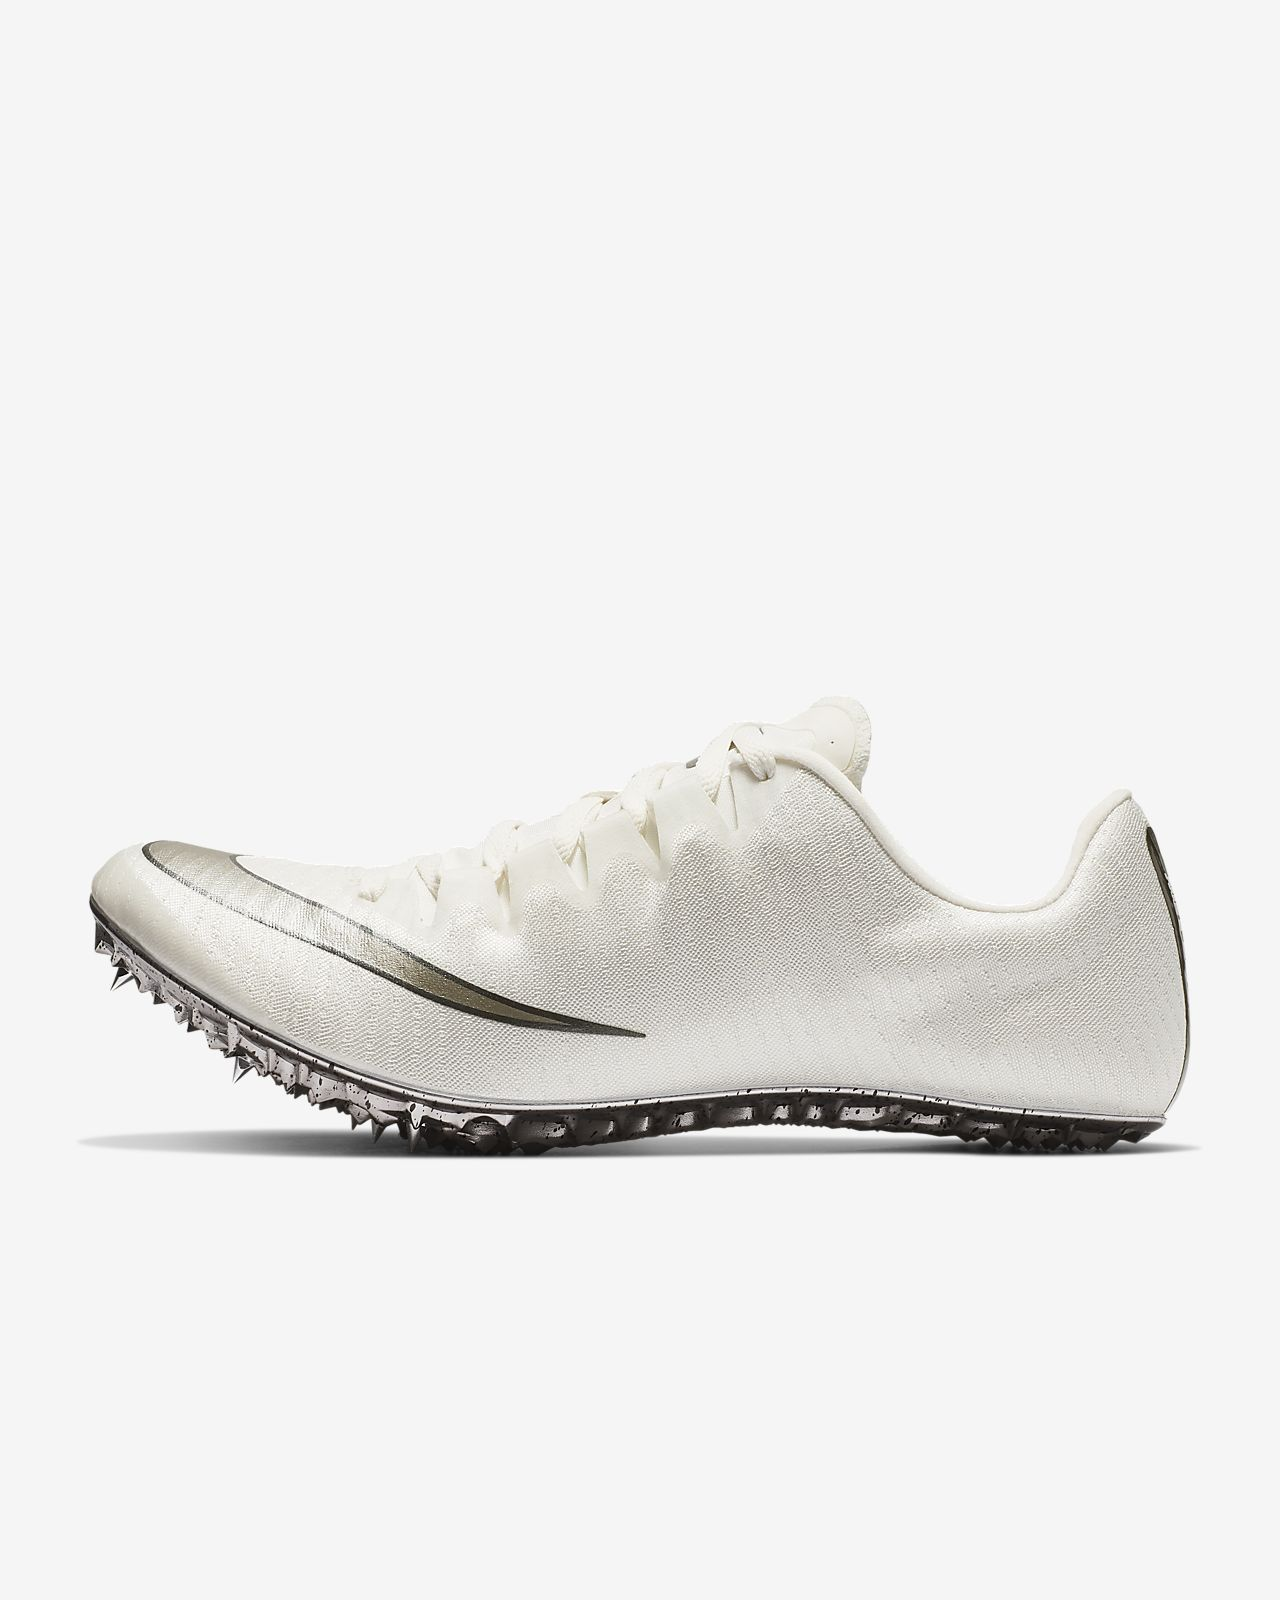 buy popular 17649 d67f1 ... Chaussure de course à pointes Nike Superfly Elite